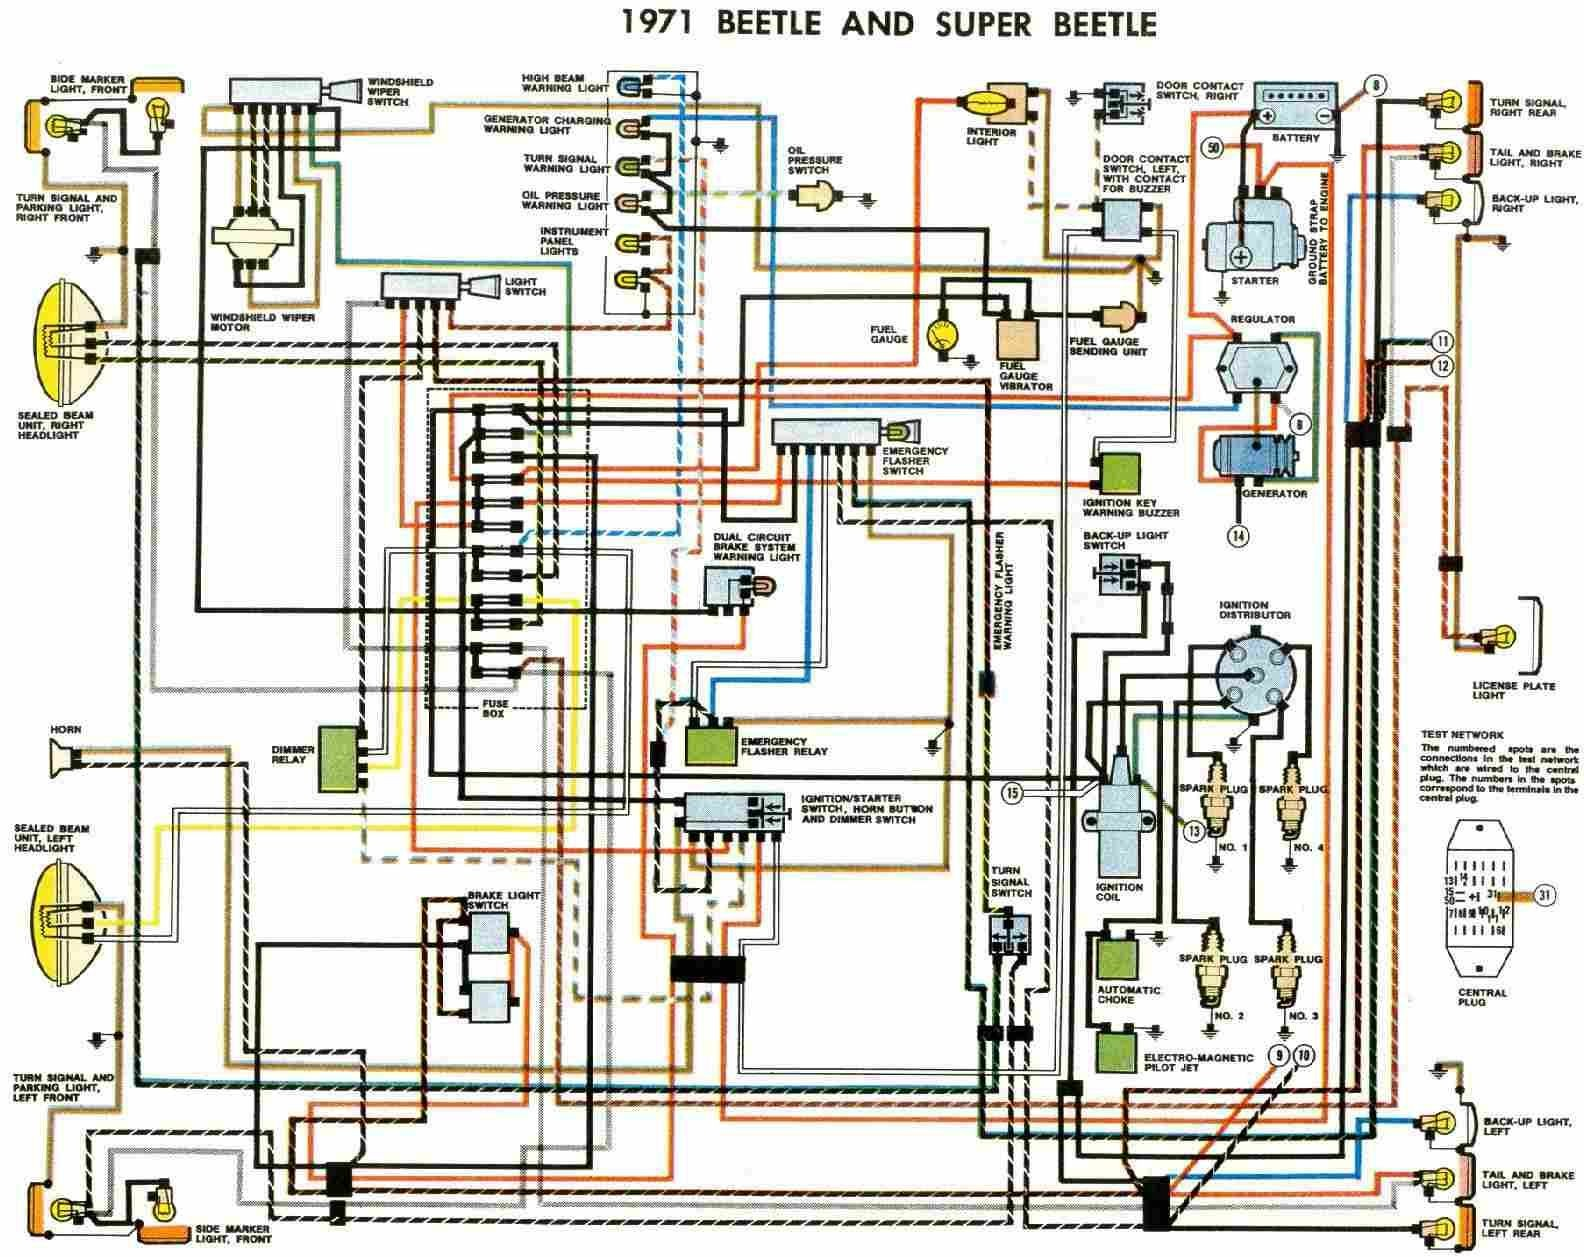 2000 Volkswagen Beetle Engine Diagram Wiring Library Vr6 Together With Vw Passat Fuse Box As Well Type 1 Free Auto 1971 And Rh Detoxicrecenze Com